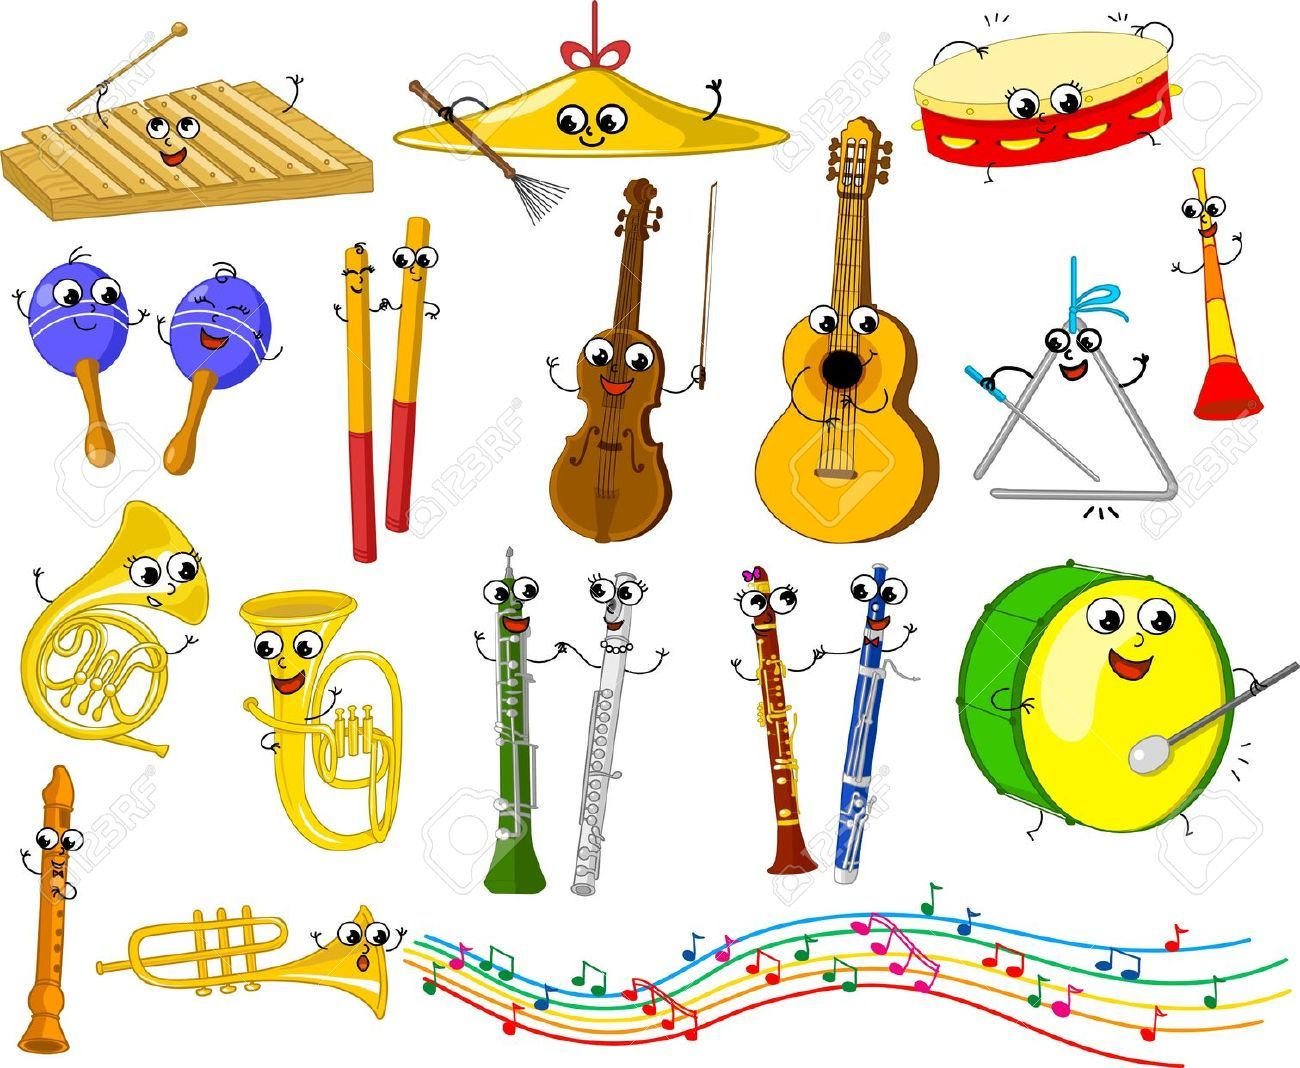 Cartoon Violin Images: Set Of Funny Cartoon Musical Instruments For Kids Royalty